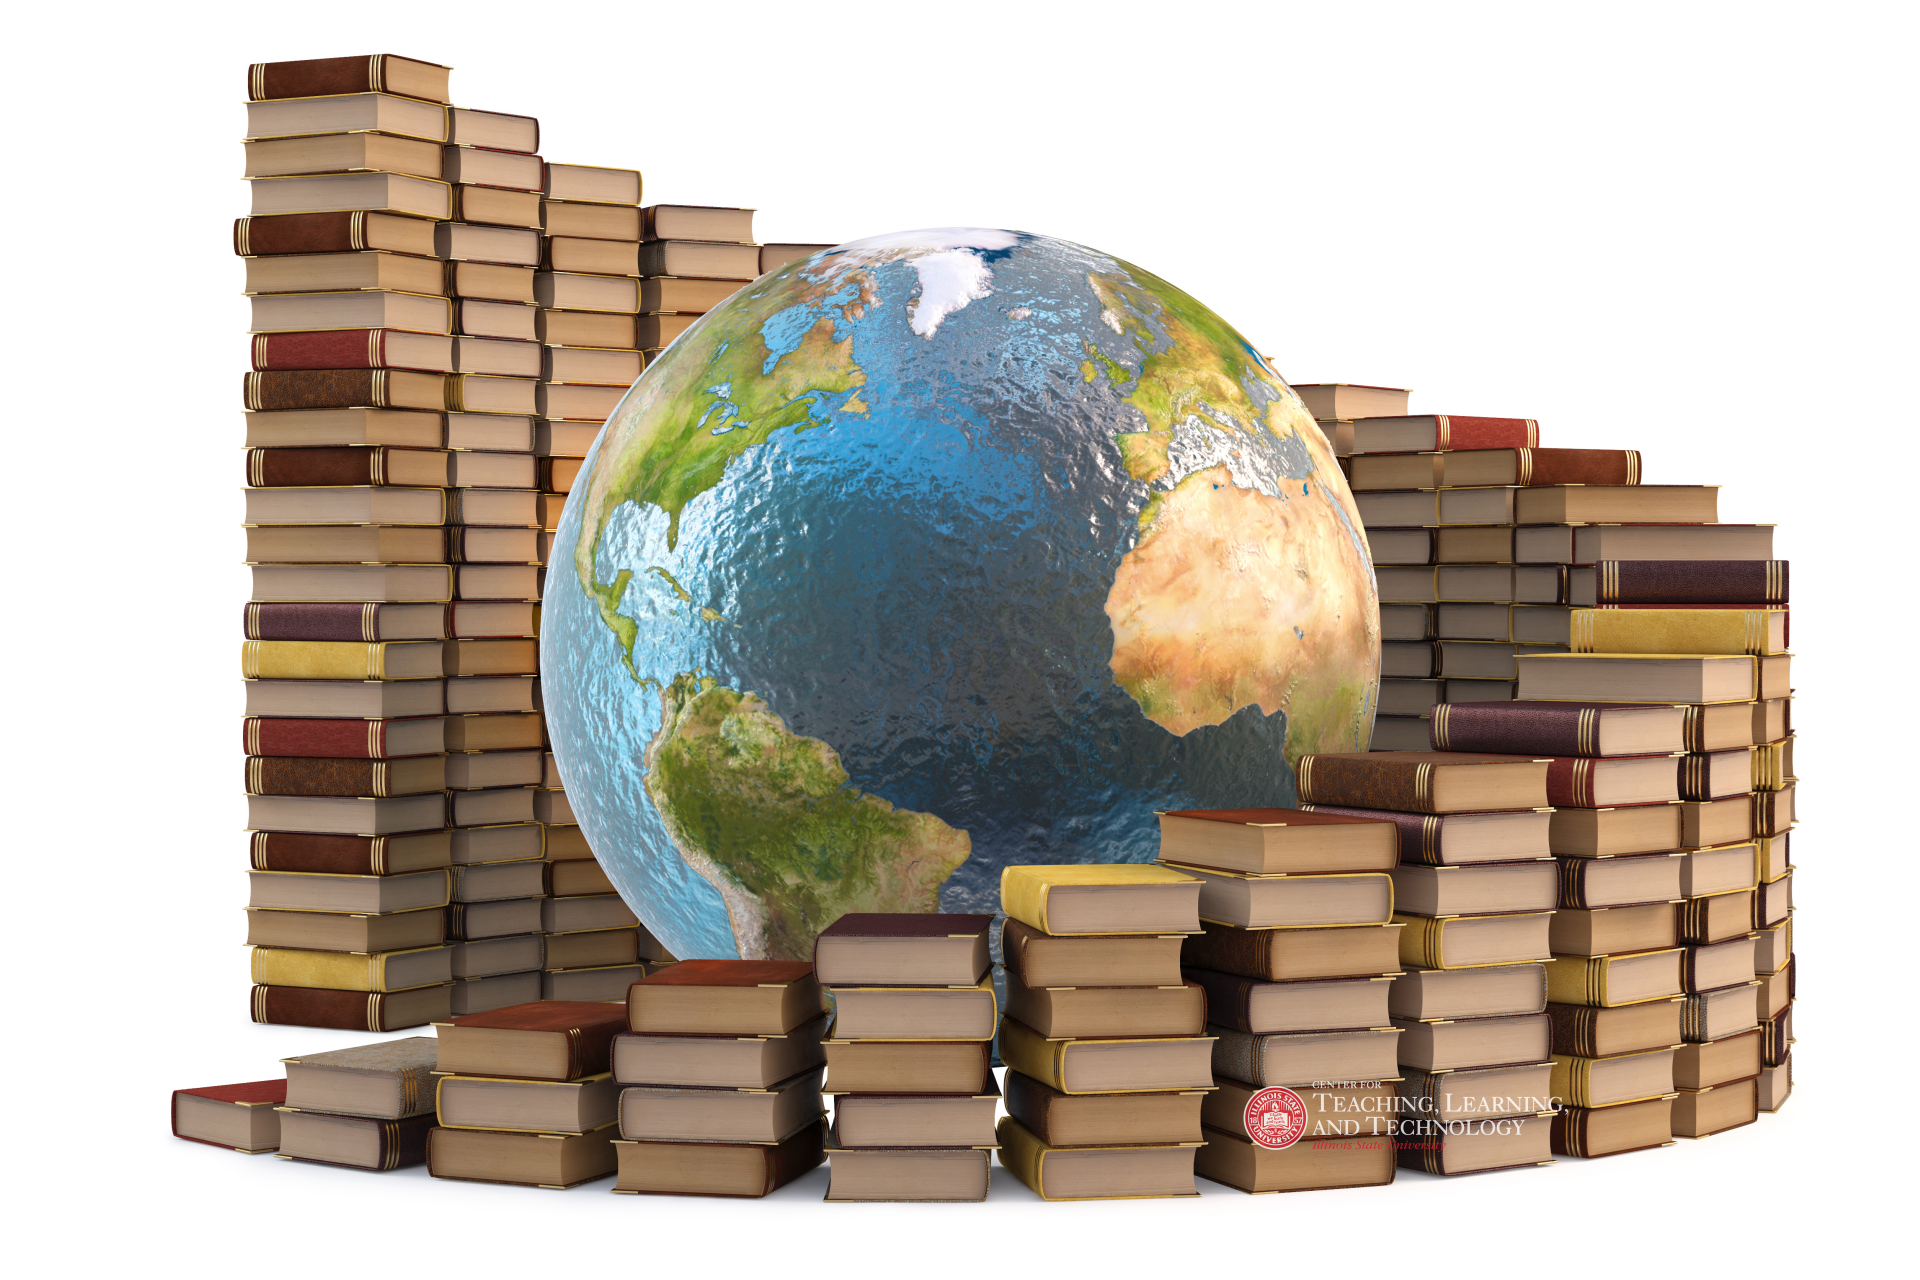 Globe surrounded by books